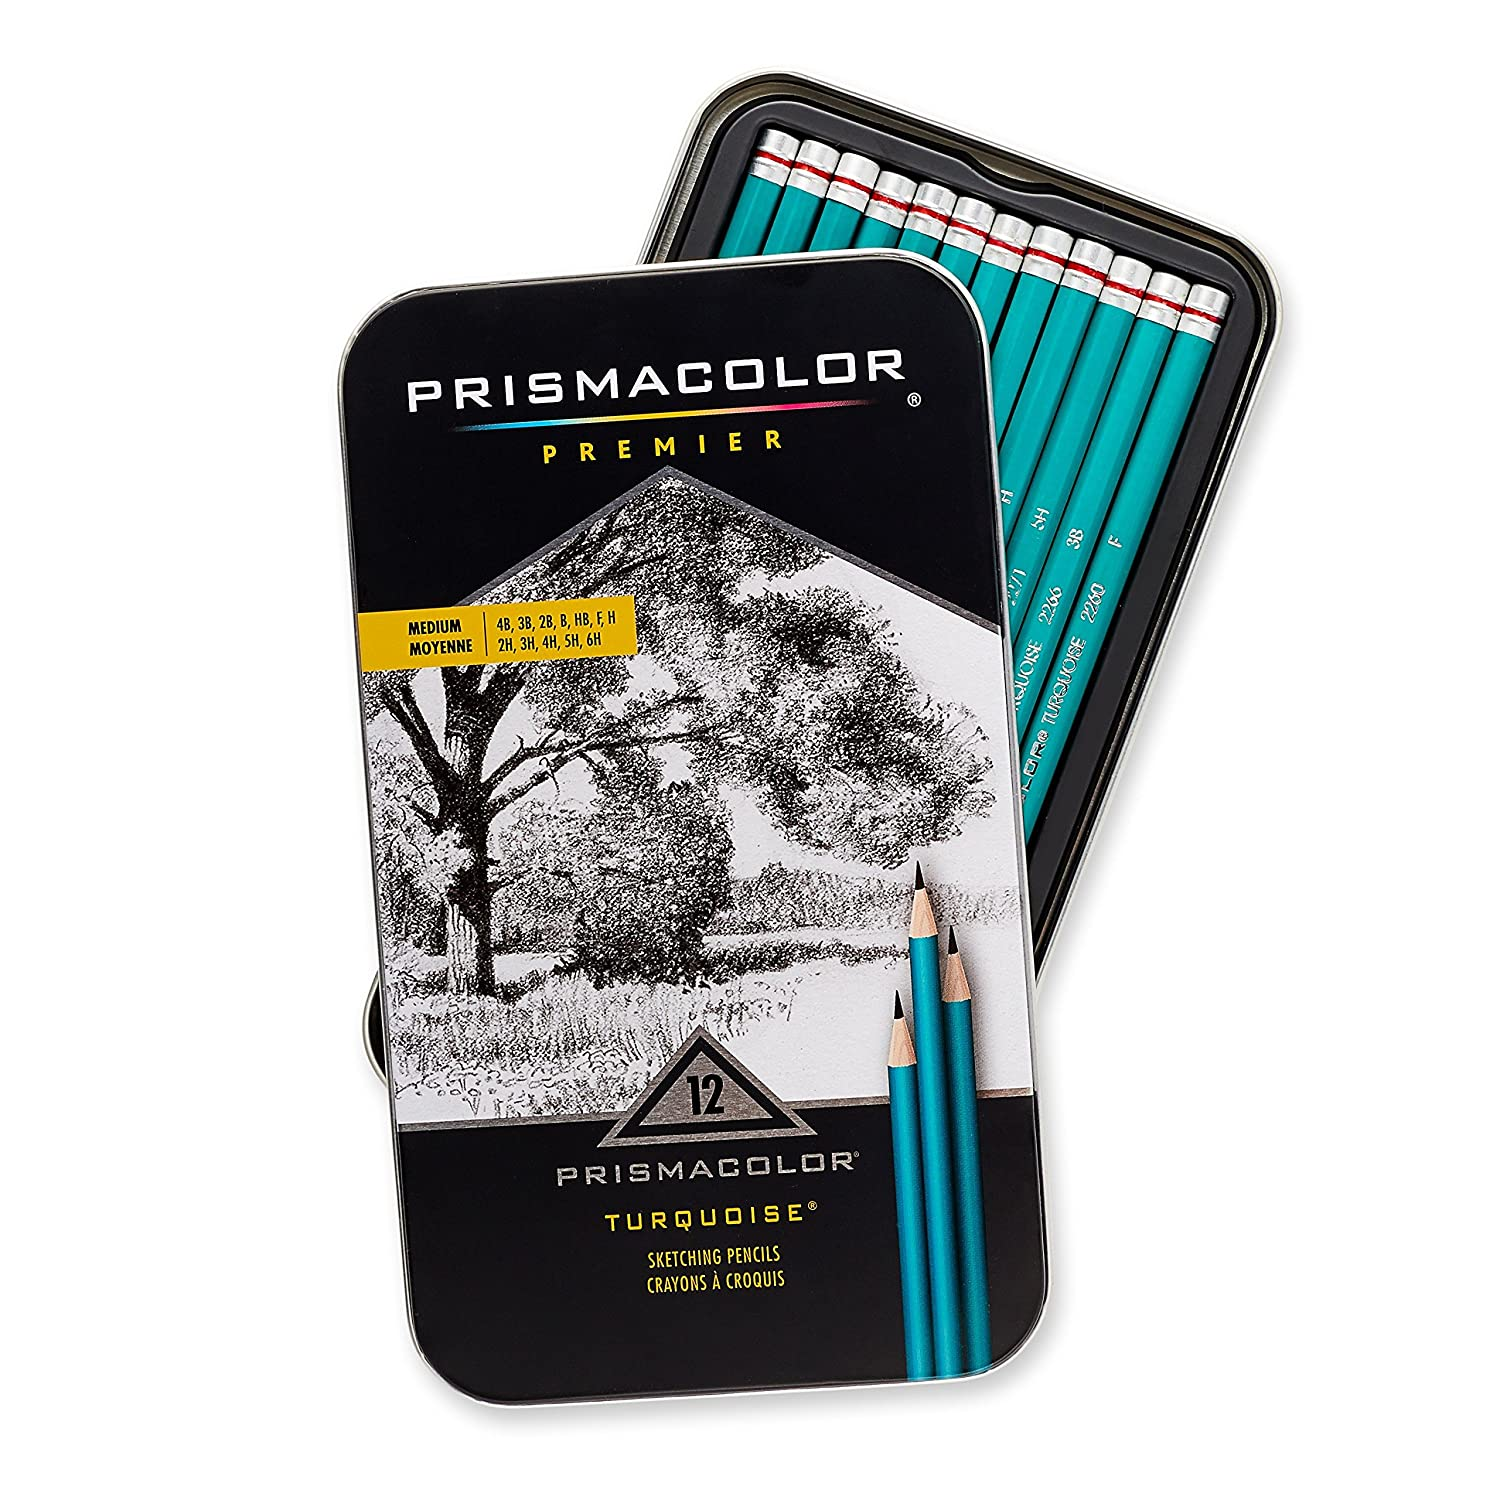 PRISMACOLOR TURQUOISE Pencil, Medium Drawing Pencils, Box of 12, Assorted Leads (24192) Sanford